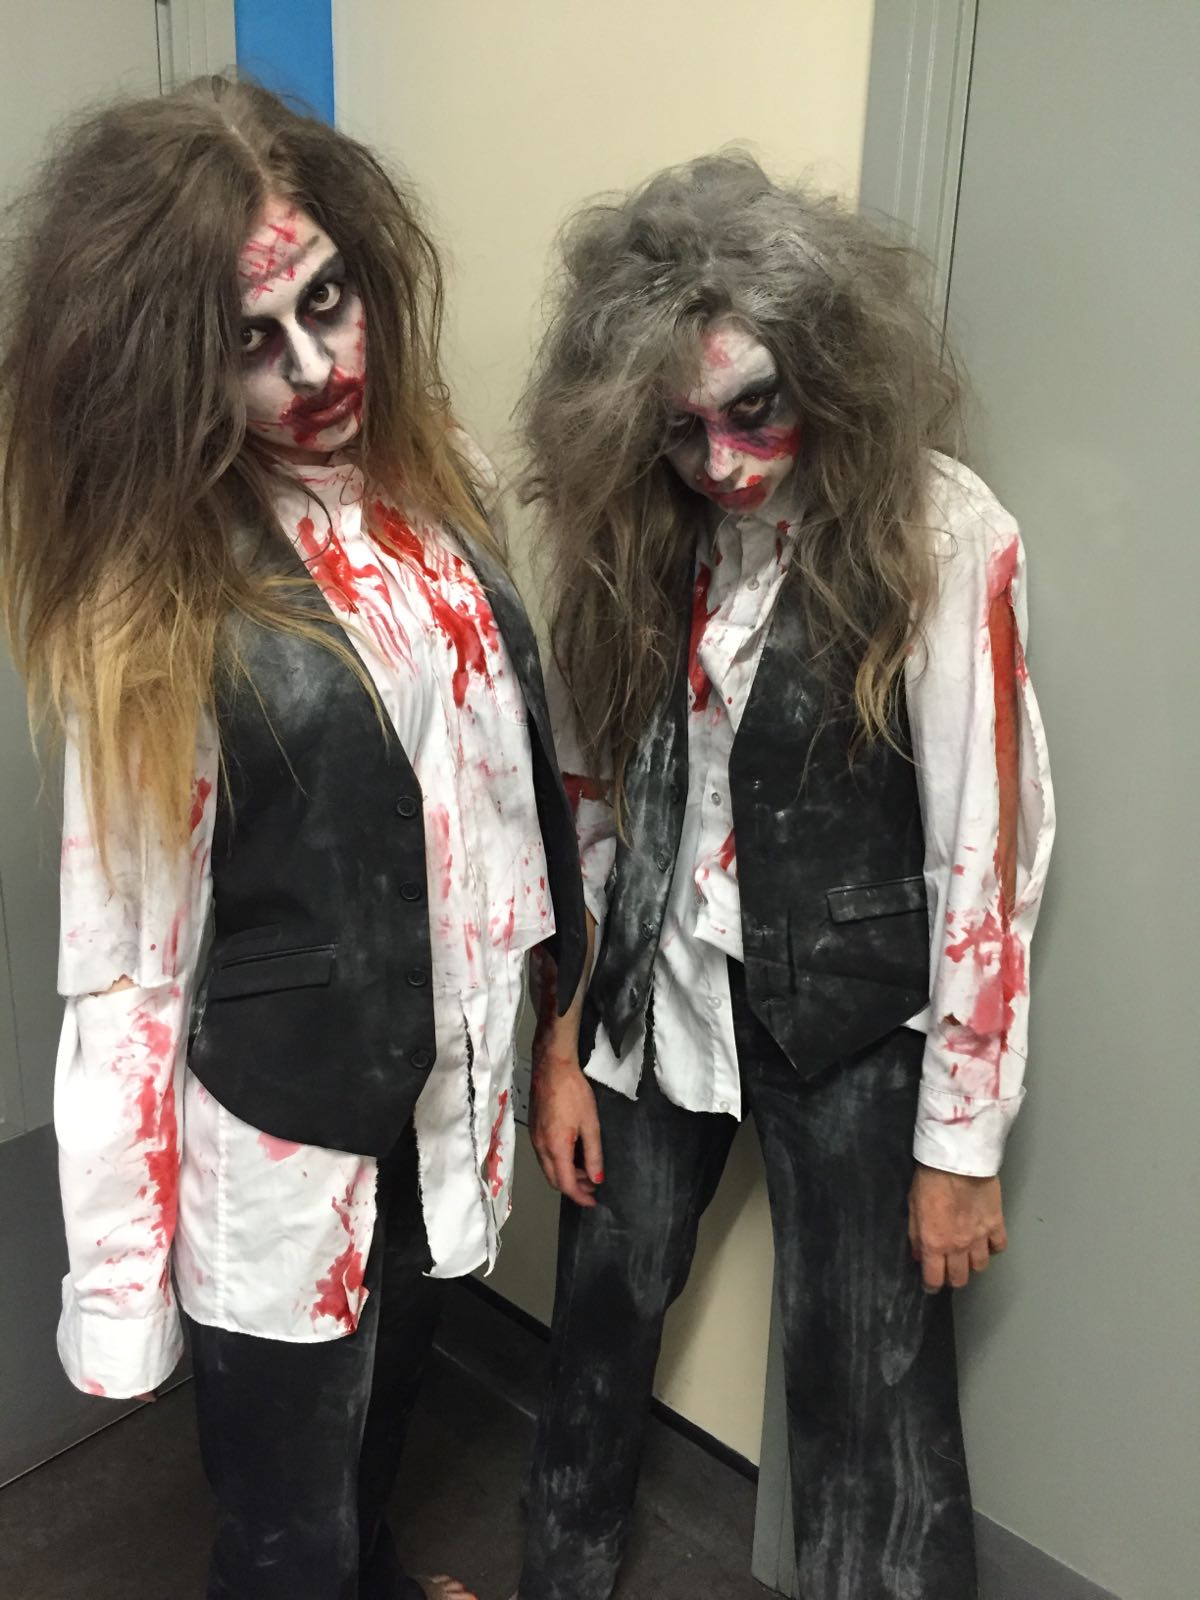 Promo Zombie Flash Mob Halloween Themed Dancers Leicester, Leicestershire